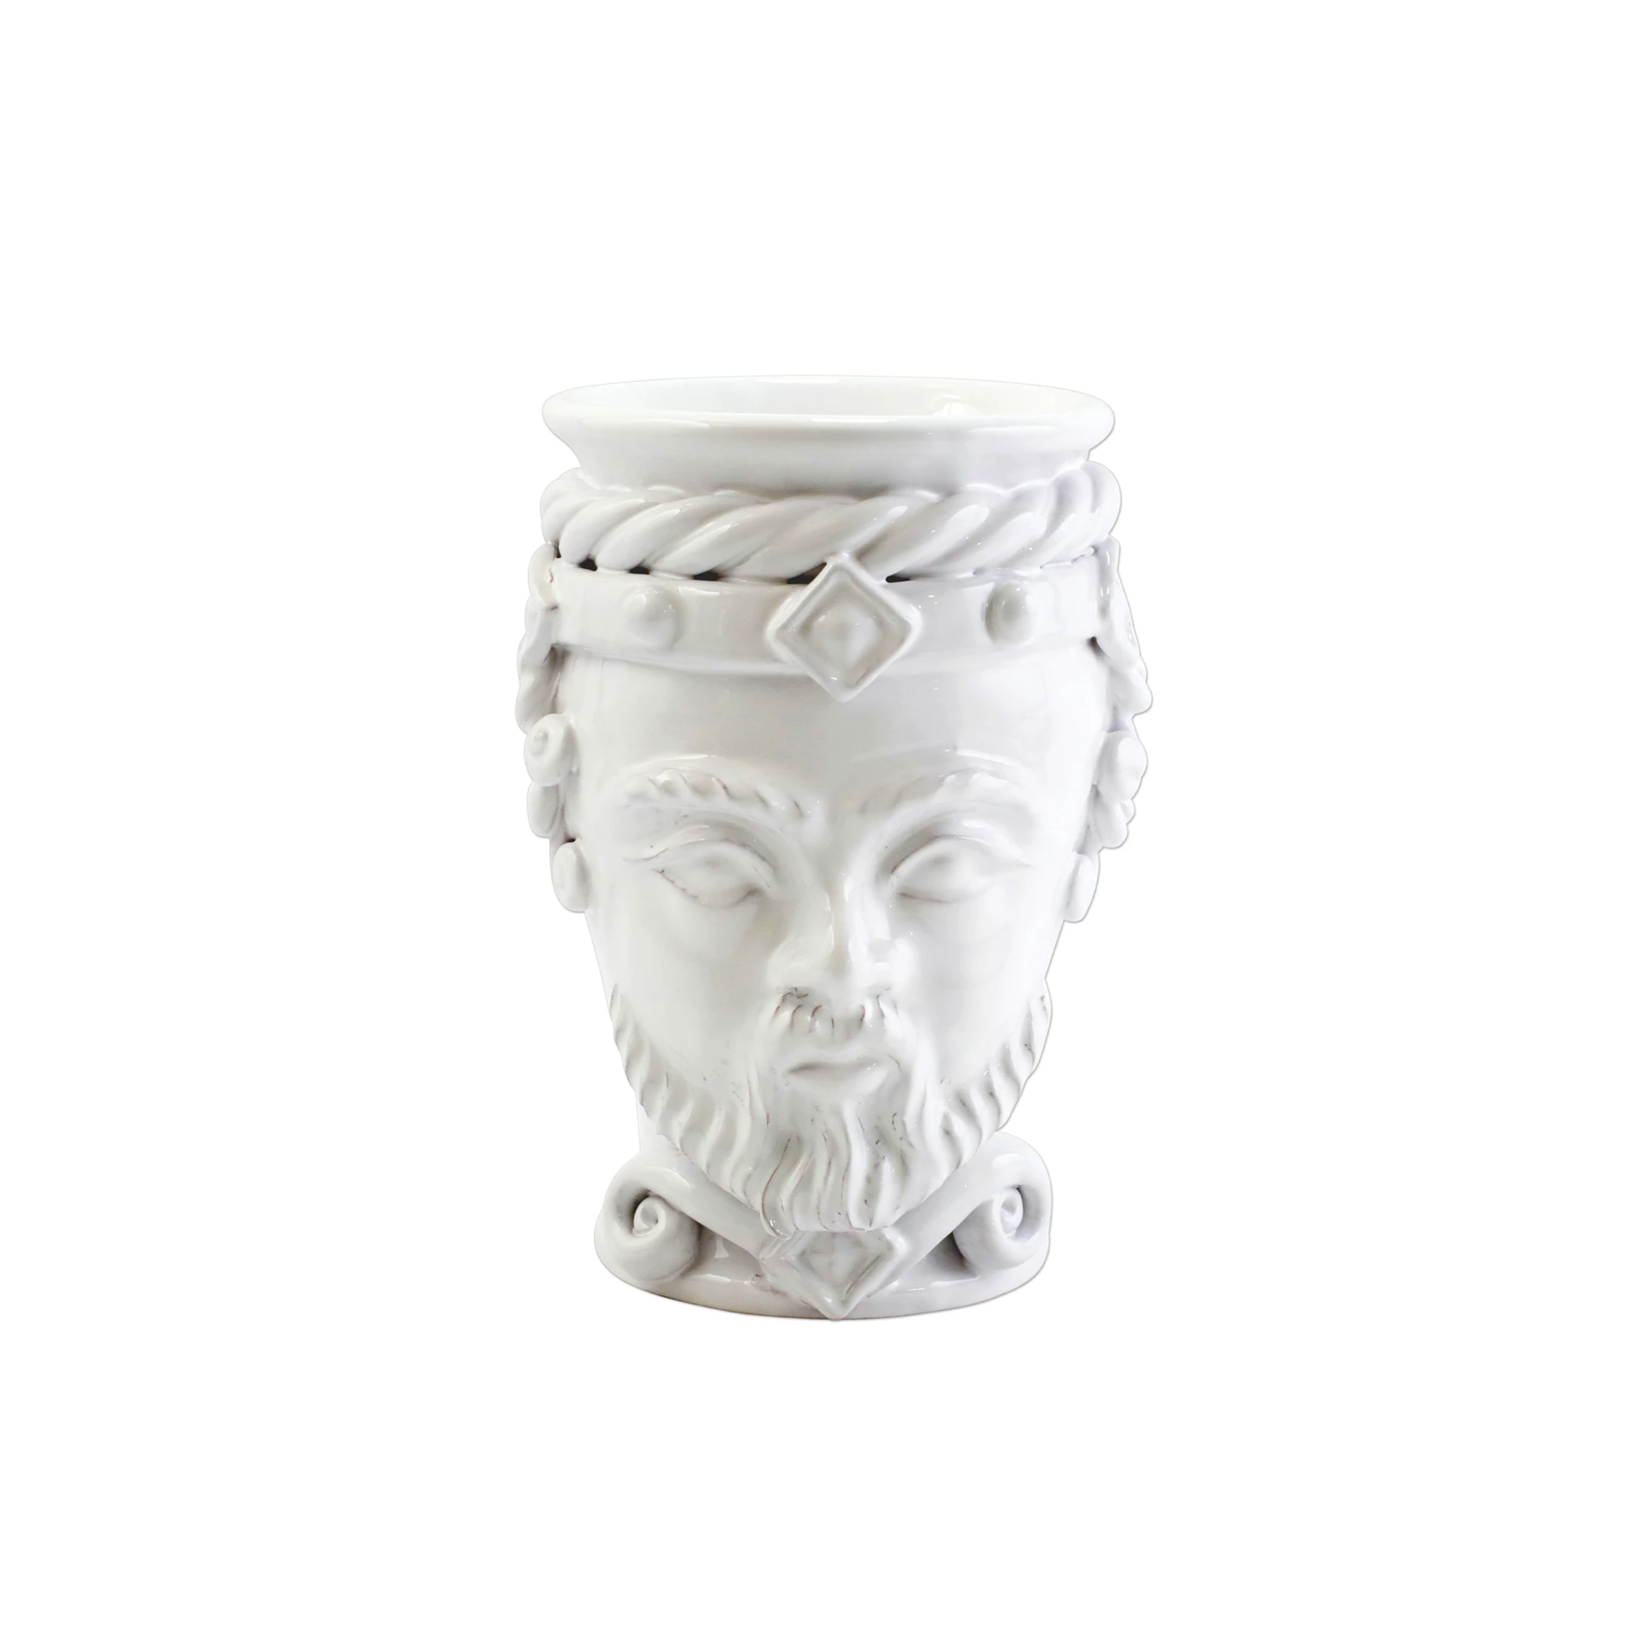 Vietri White Sicilian Head